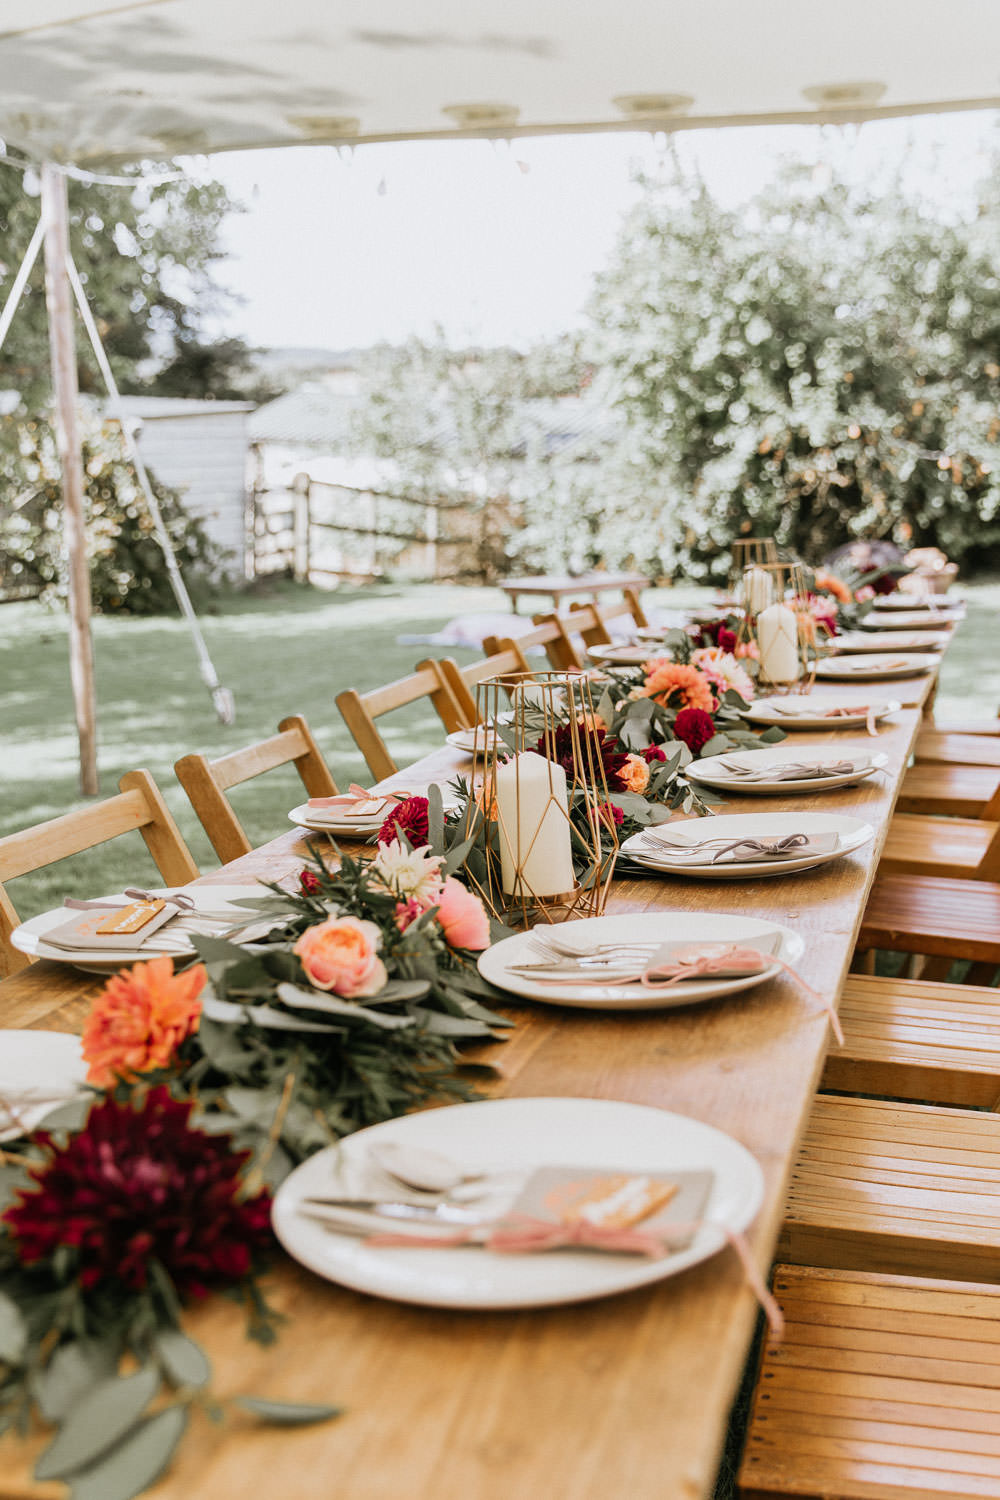 Stretch Tent Outdoor Festoon Lights Long Wooden Antique Tables Chairs Flower Swag Garland Summer Boho Wedding Wild Tide Weddings